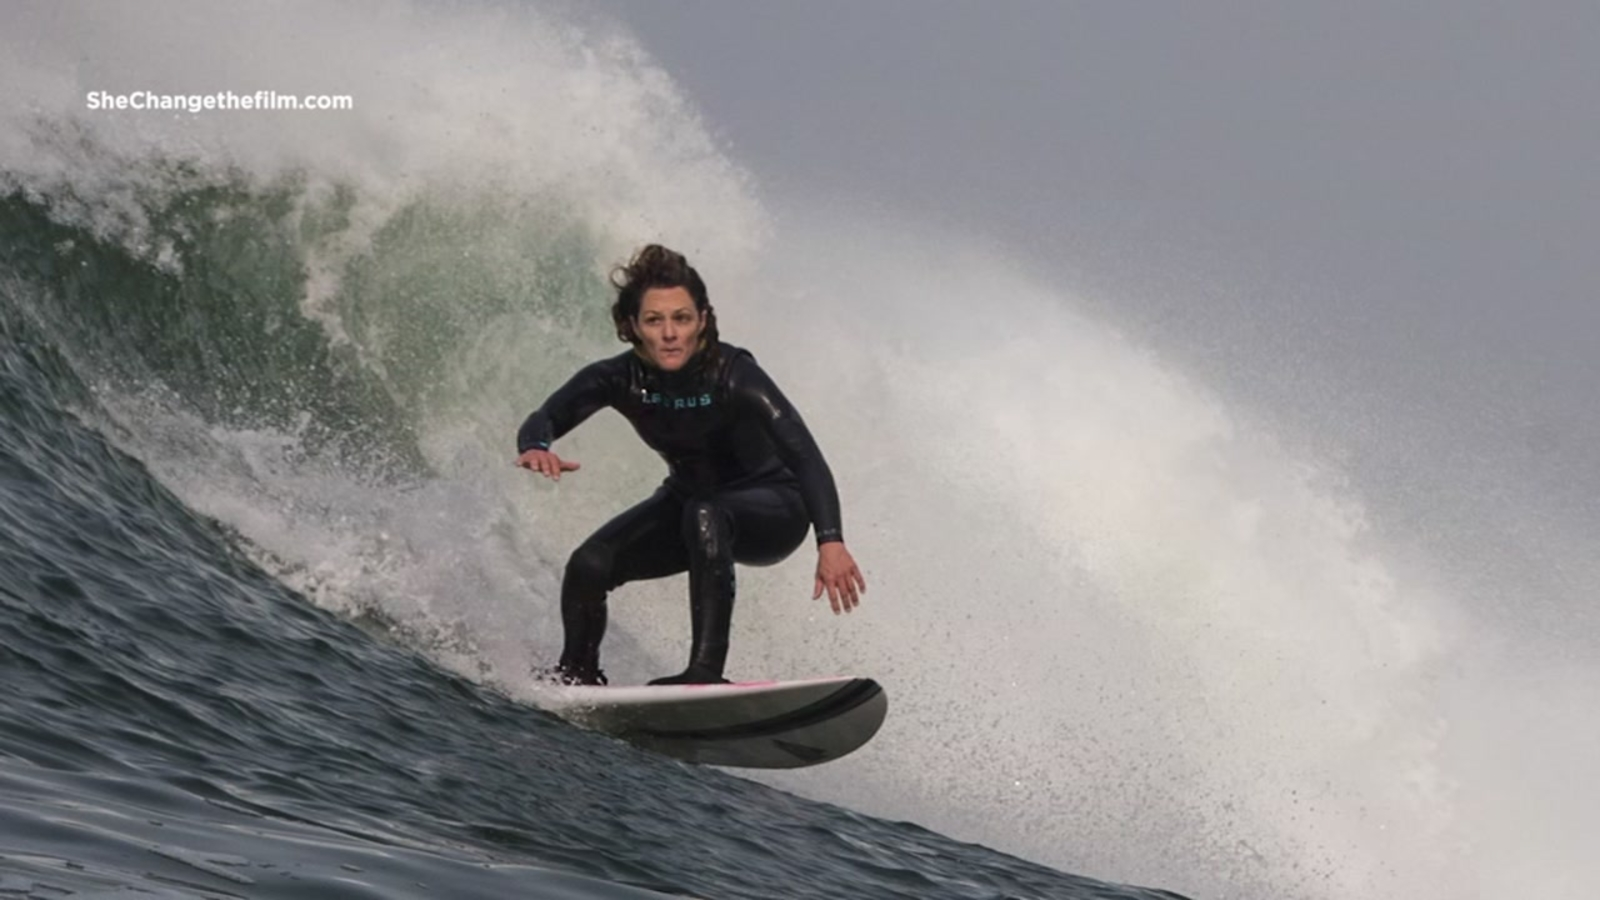 Women To Compete In Legendary Mavericks Surf Contest For 1st Time